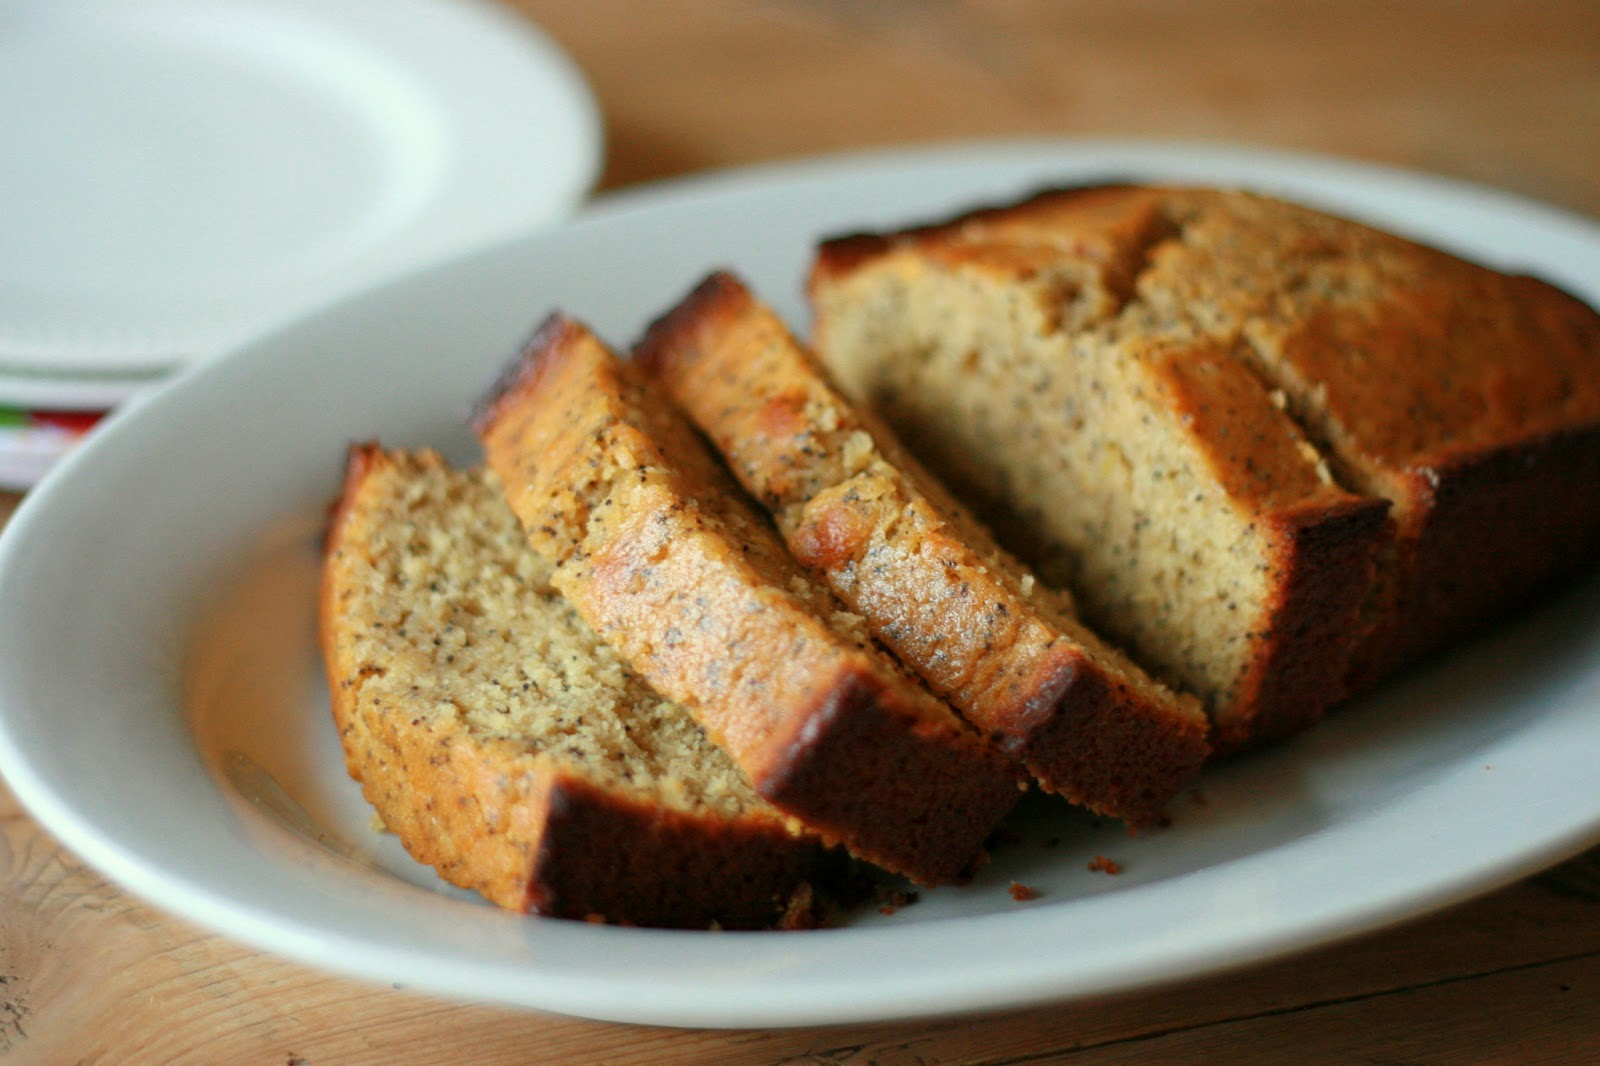 ... Living with Elmo: Poppy Seed Bread with Lemon-Honey Glaze (Dairy-Free